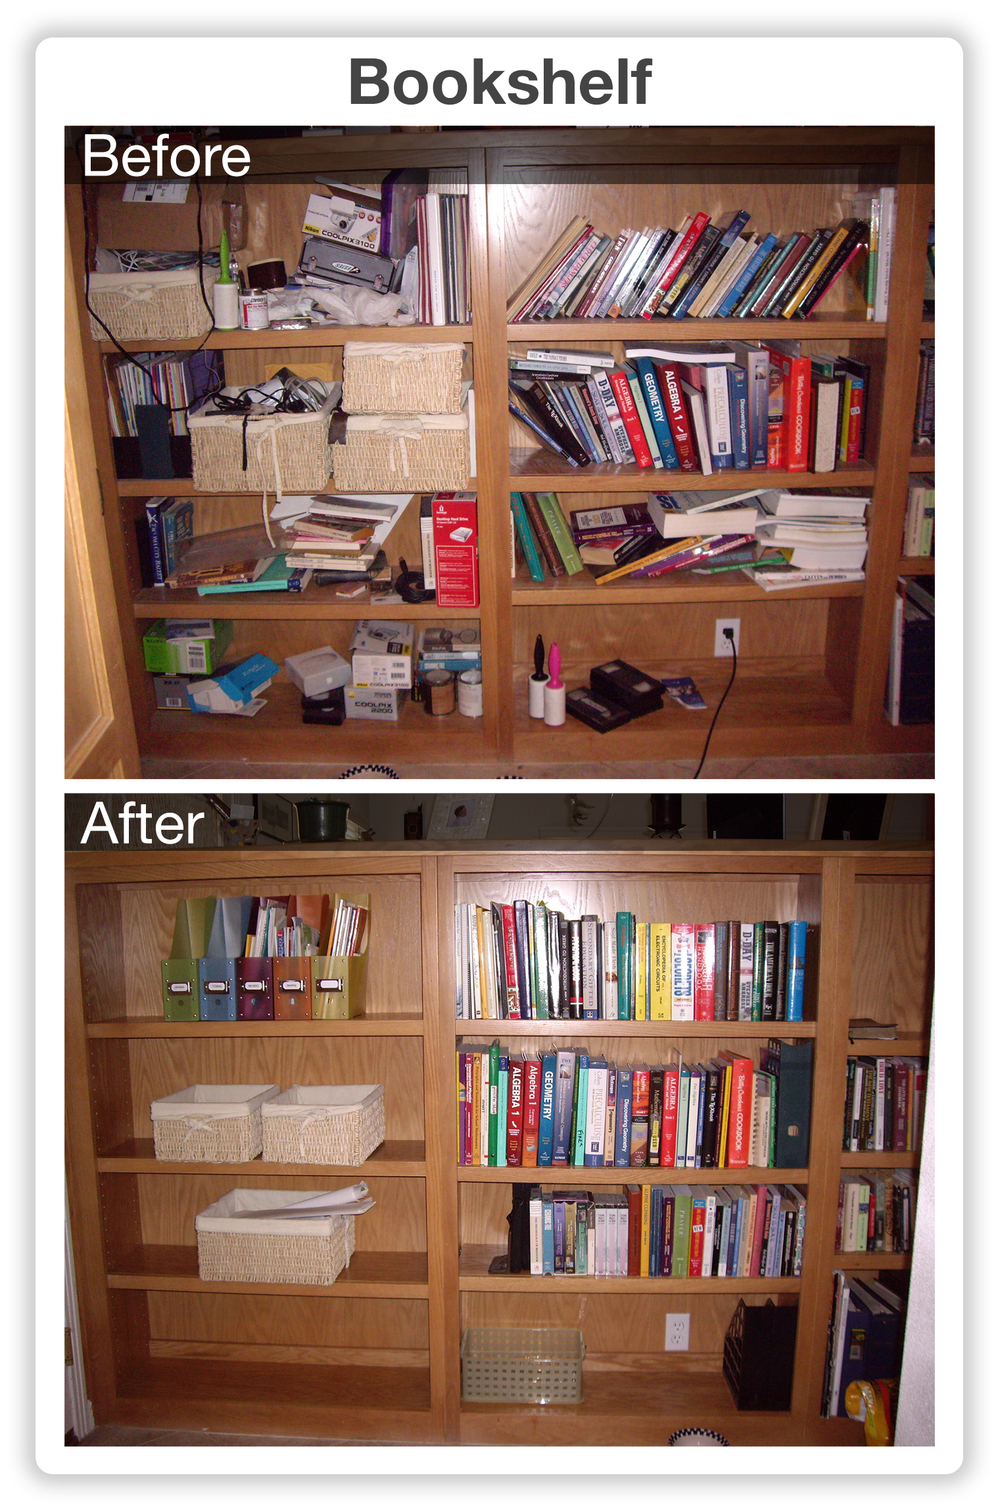 organized_by_choice_bookshelf.jpg